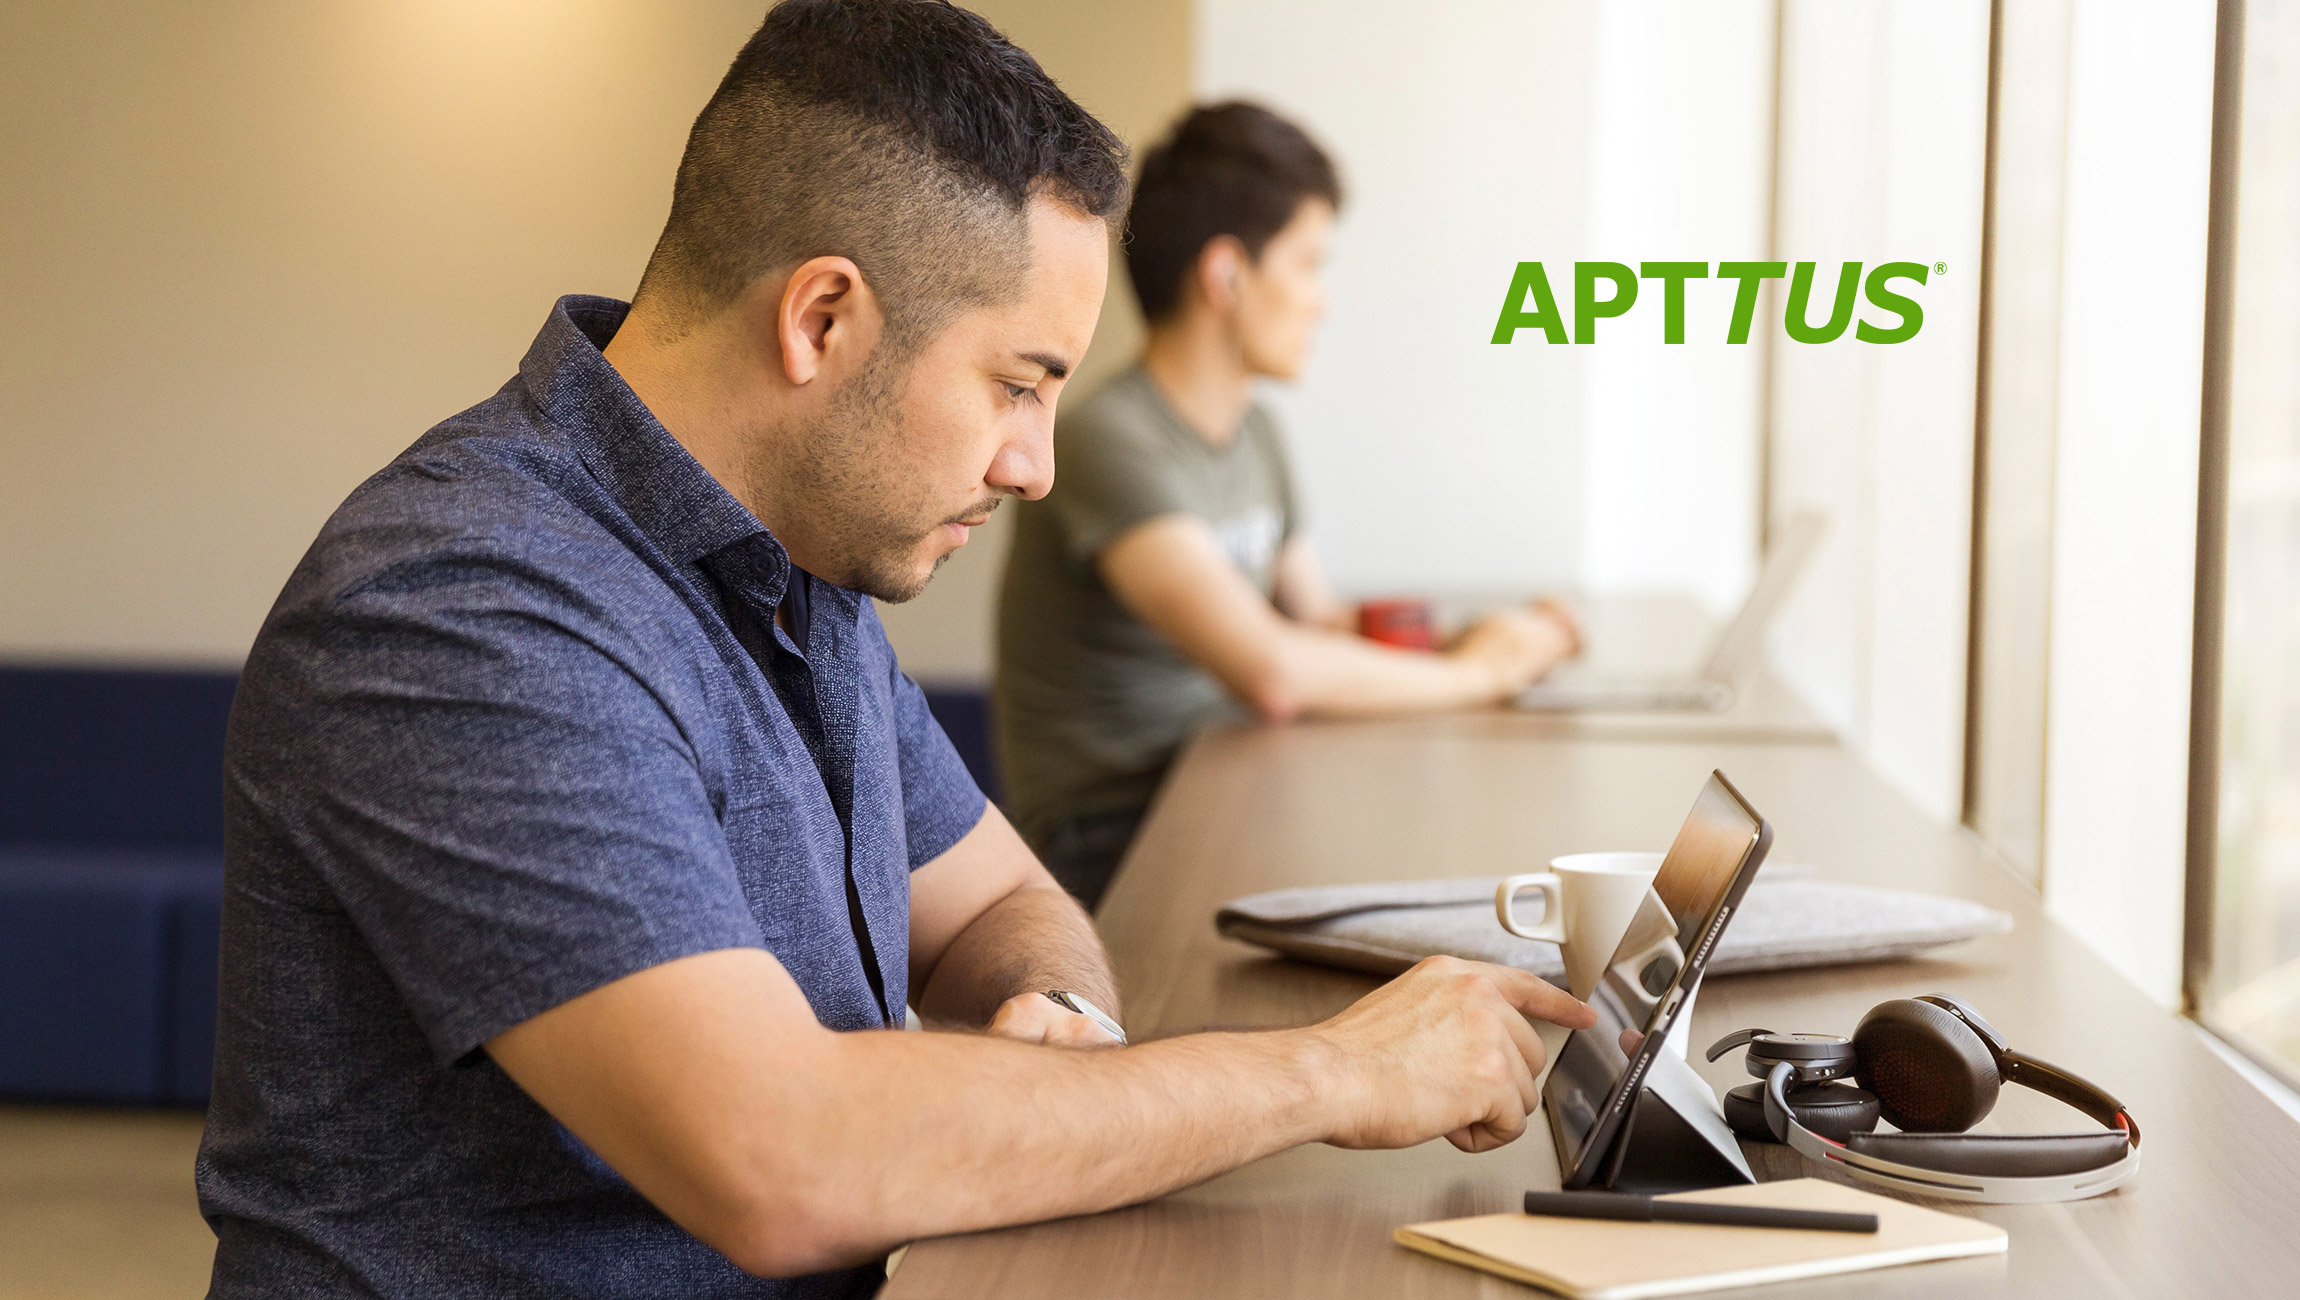 Apttus Recognized as a Leader Among Application Suites